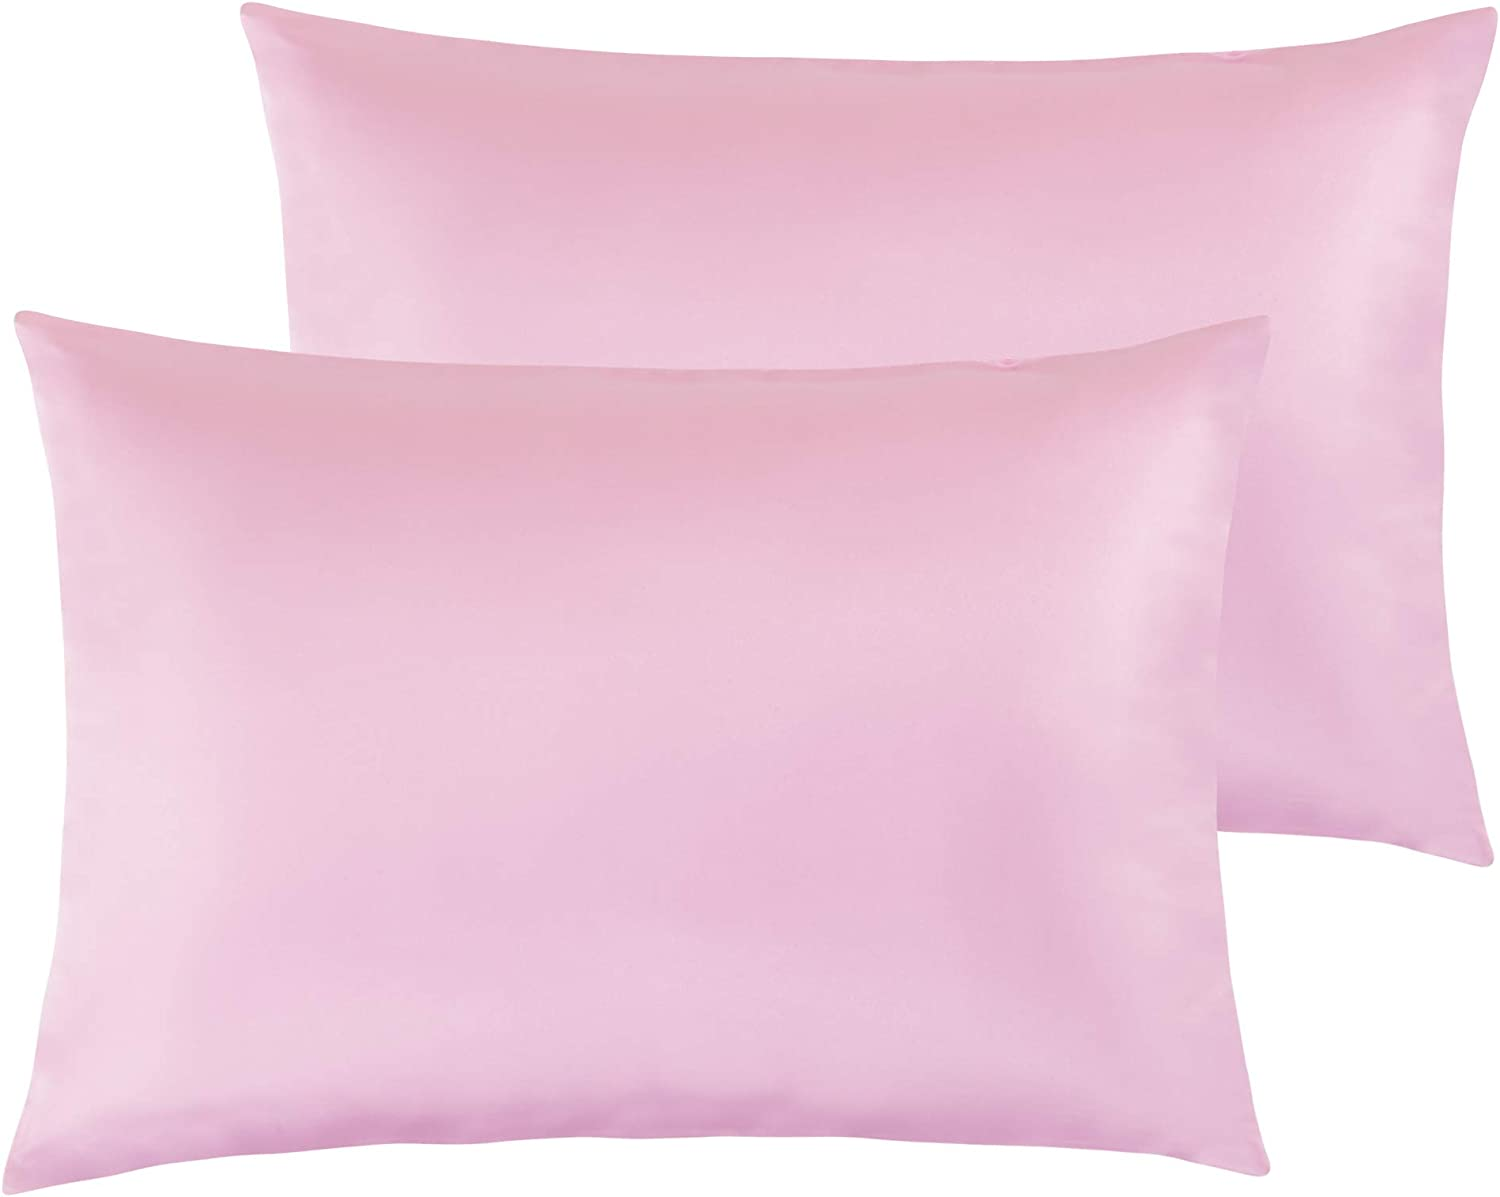 """NTBAY Satin Toddler Pillowcases, Travel Pillow Covers Set of 2, Zipper Closure, Super Soft and Luxury, 13""""x 18"""", Light Pink"""